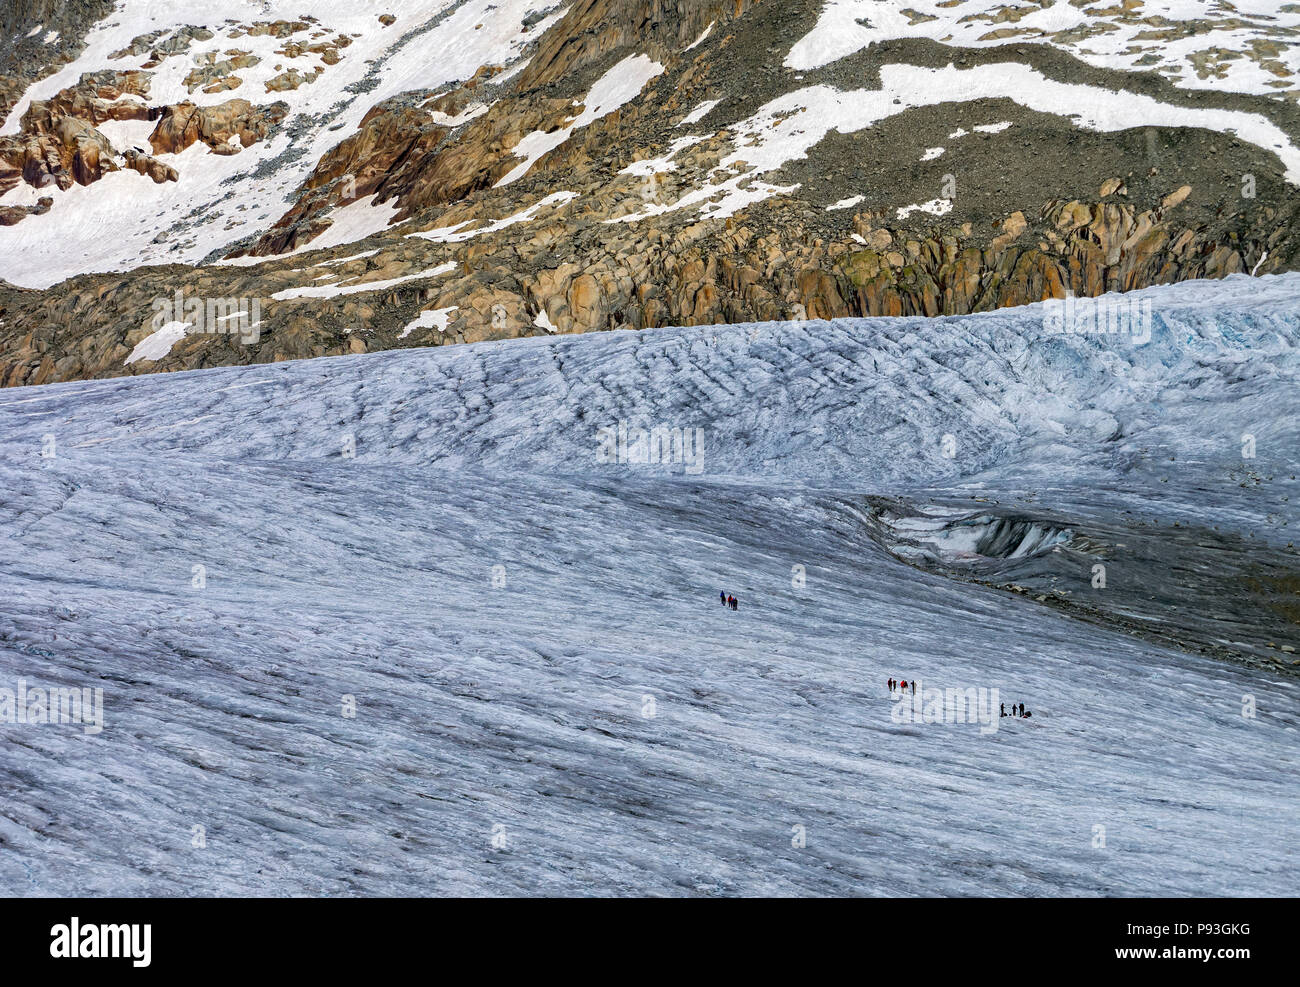 Glacier hikers - Stock Image